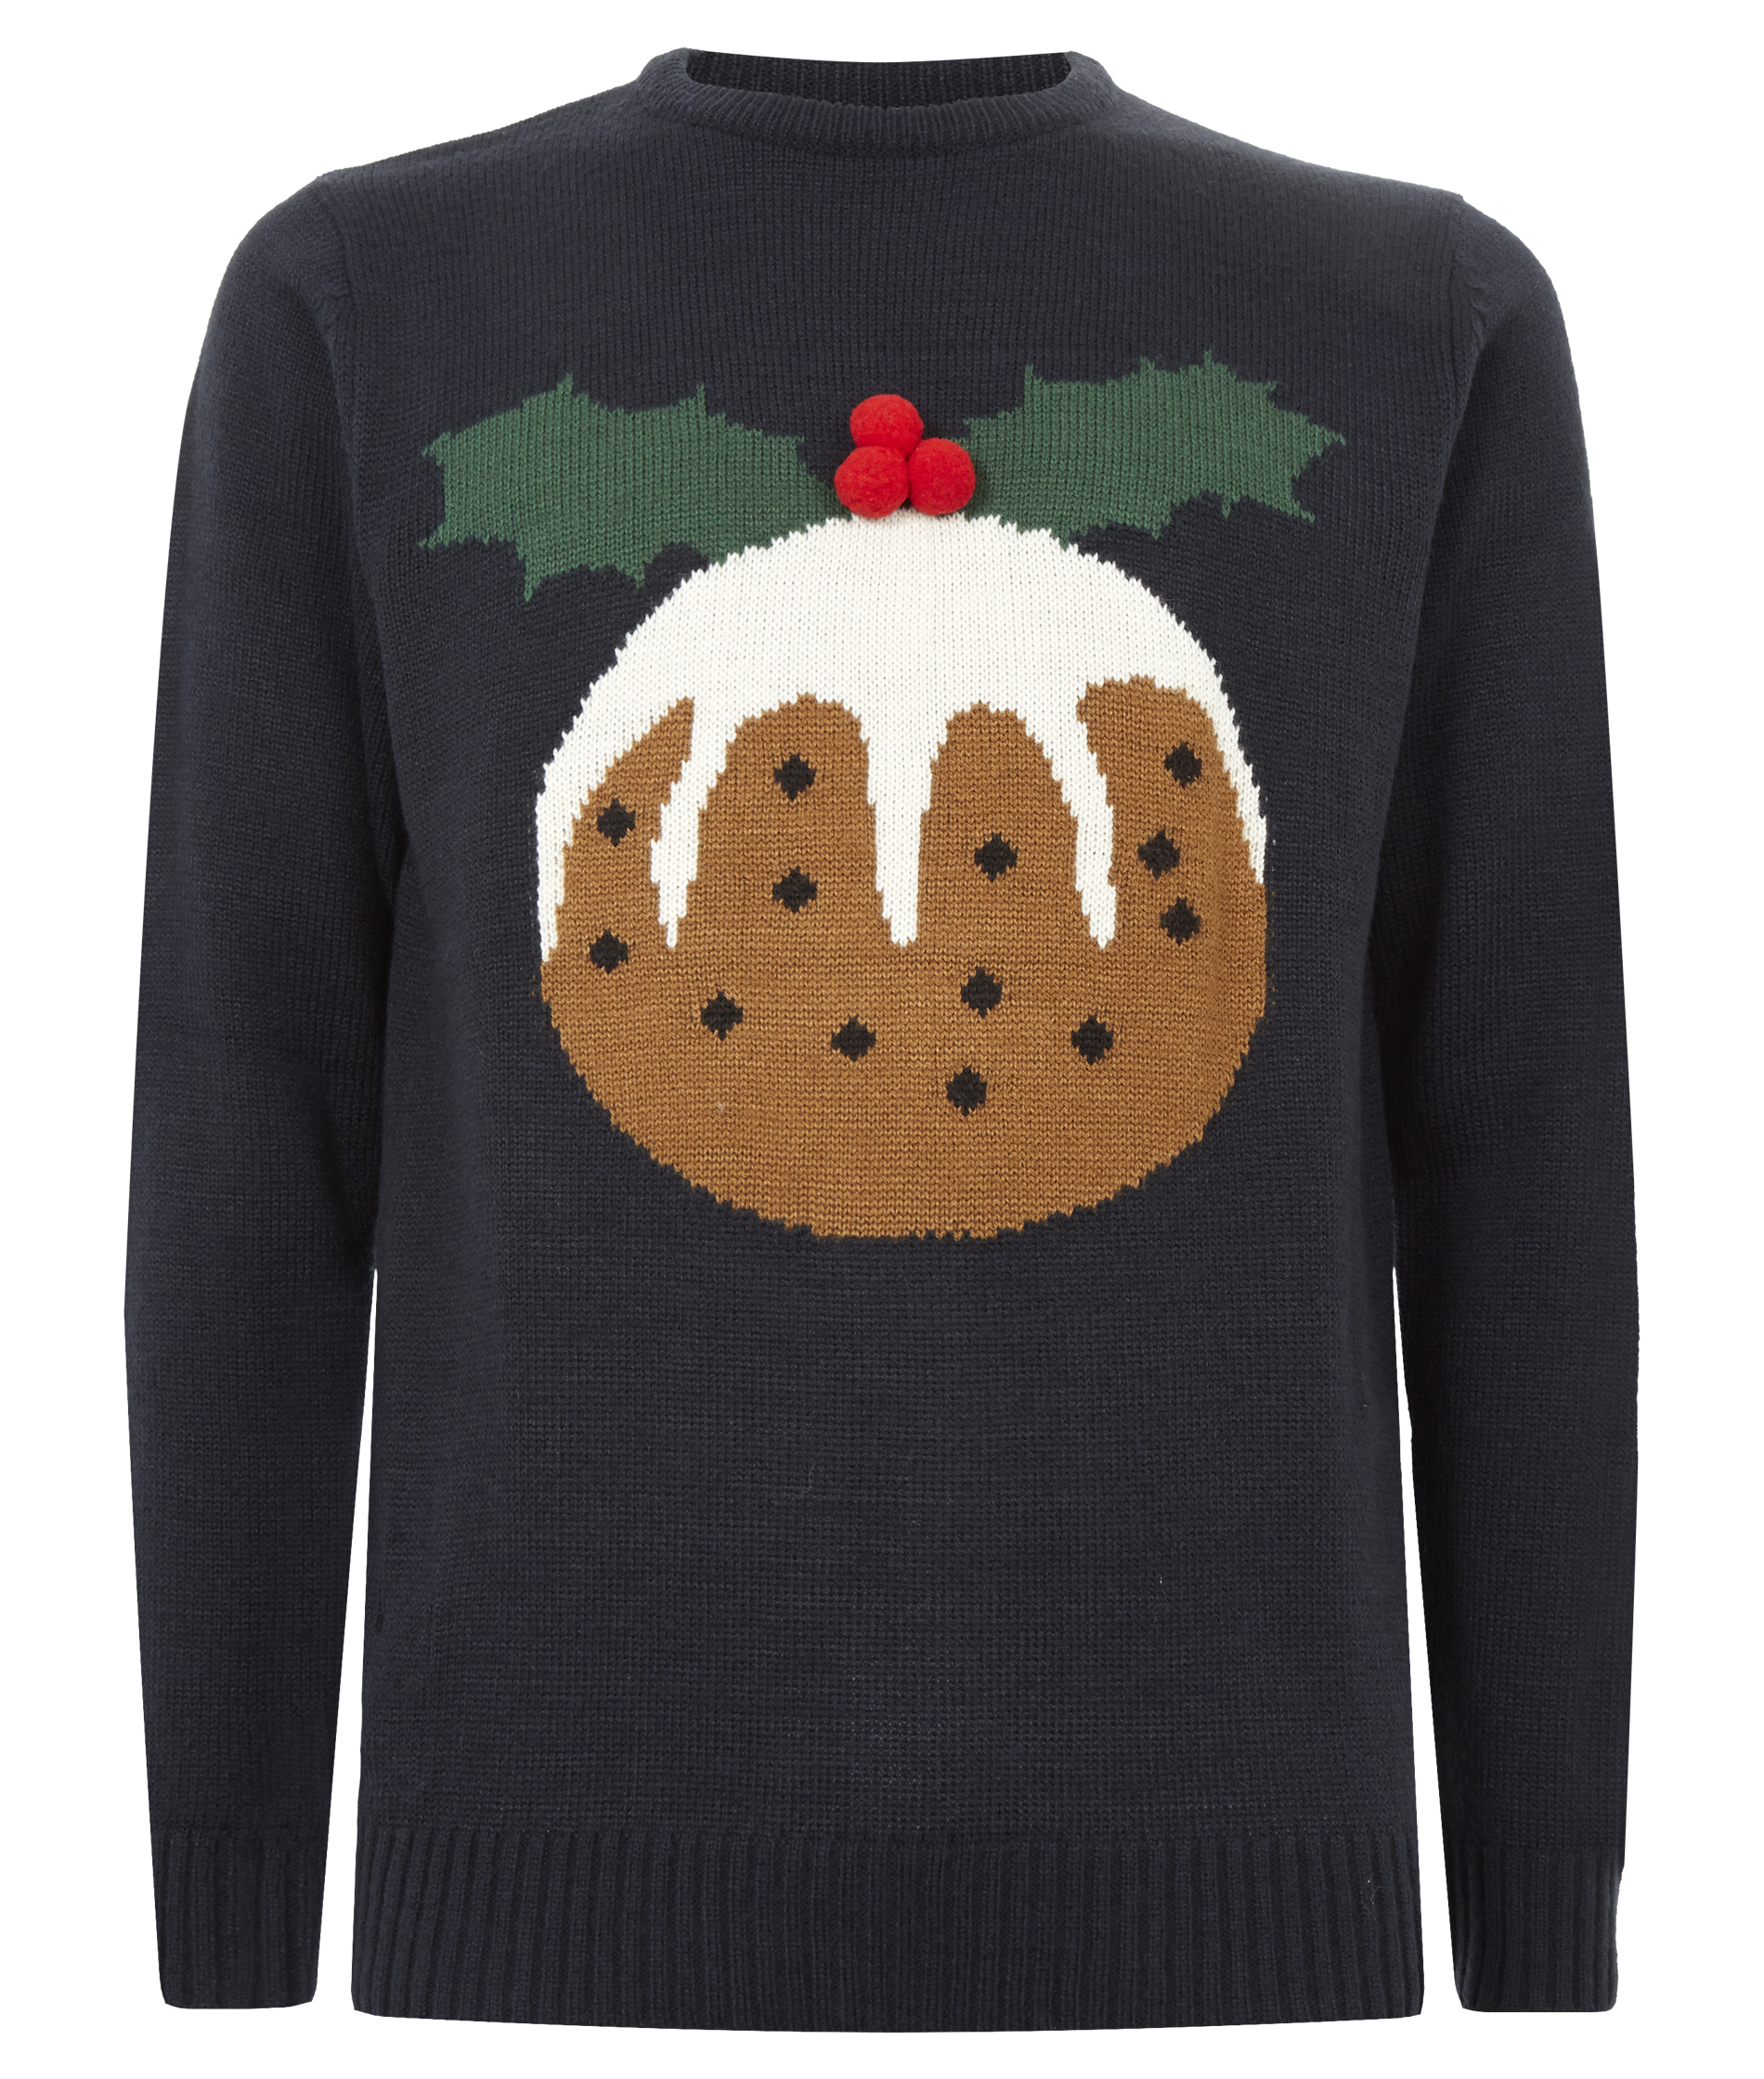 The top 10 Christmas jumpers for 2013